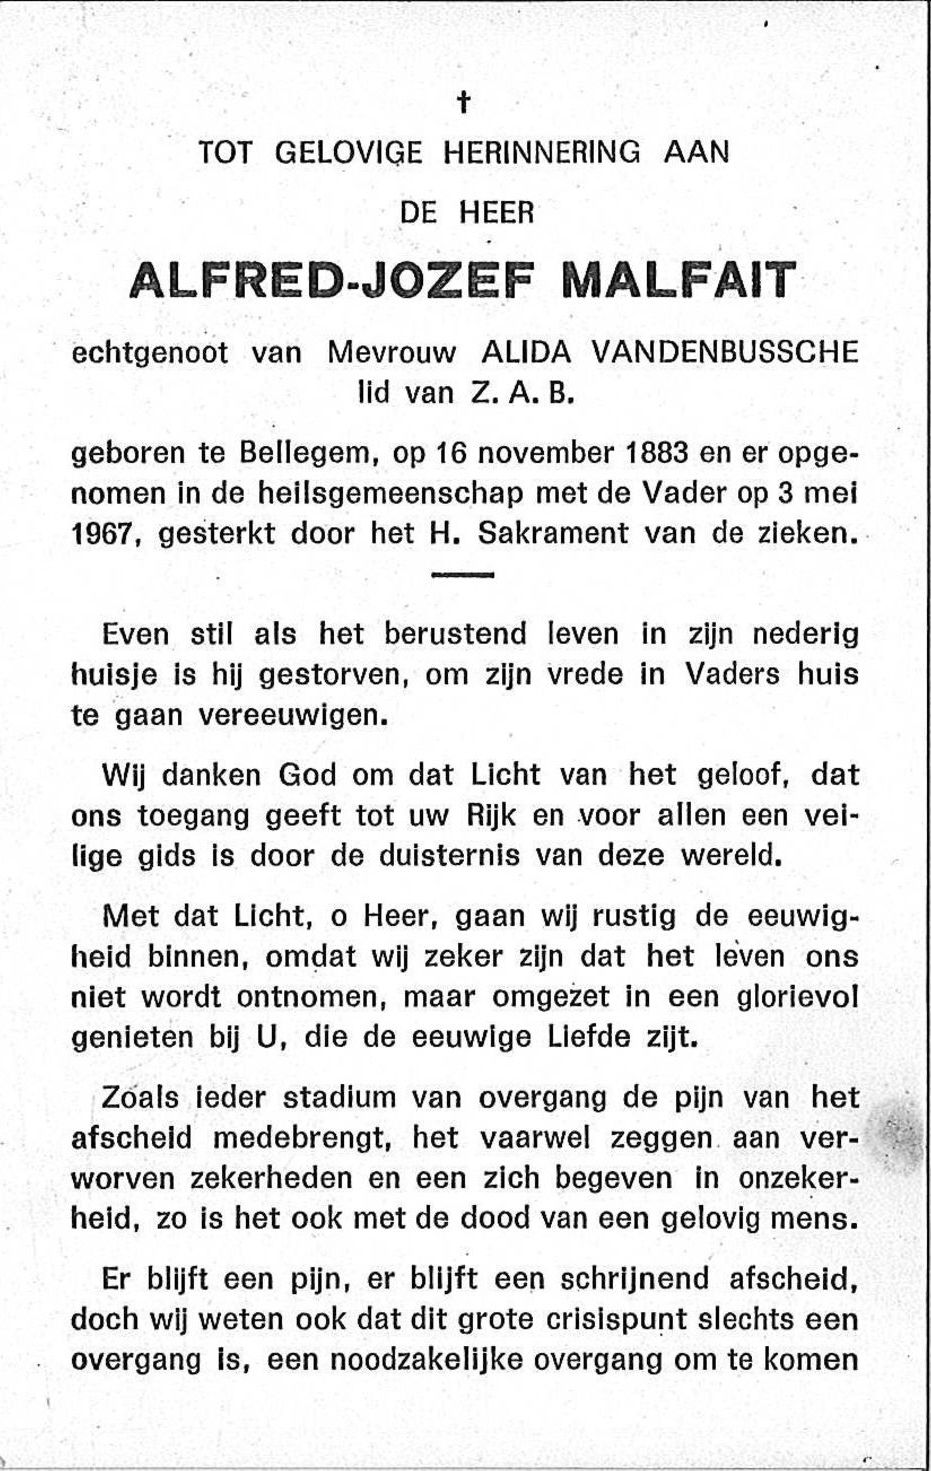 Alfred-Jozef Malfait